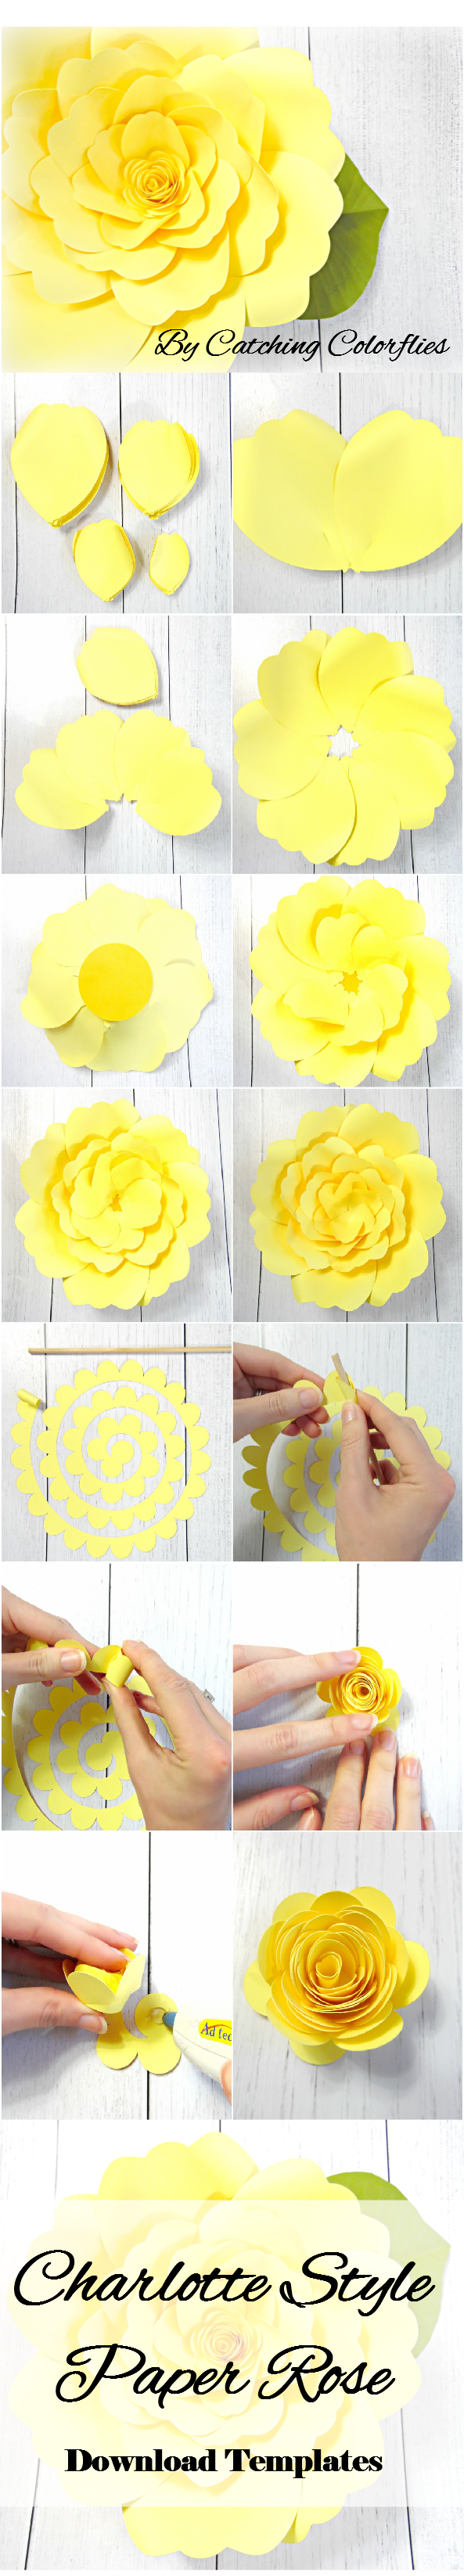 Giant Paper Flower Tutorial with templates, DIY paper flower templates, Paper flower SVG files, Large paper flower templates, Xl edition #largepaperflowers